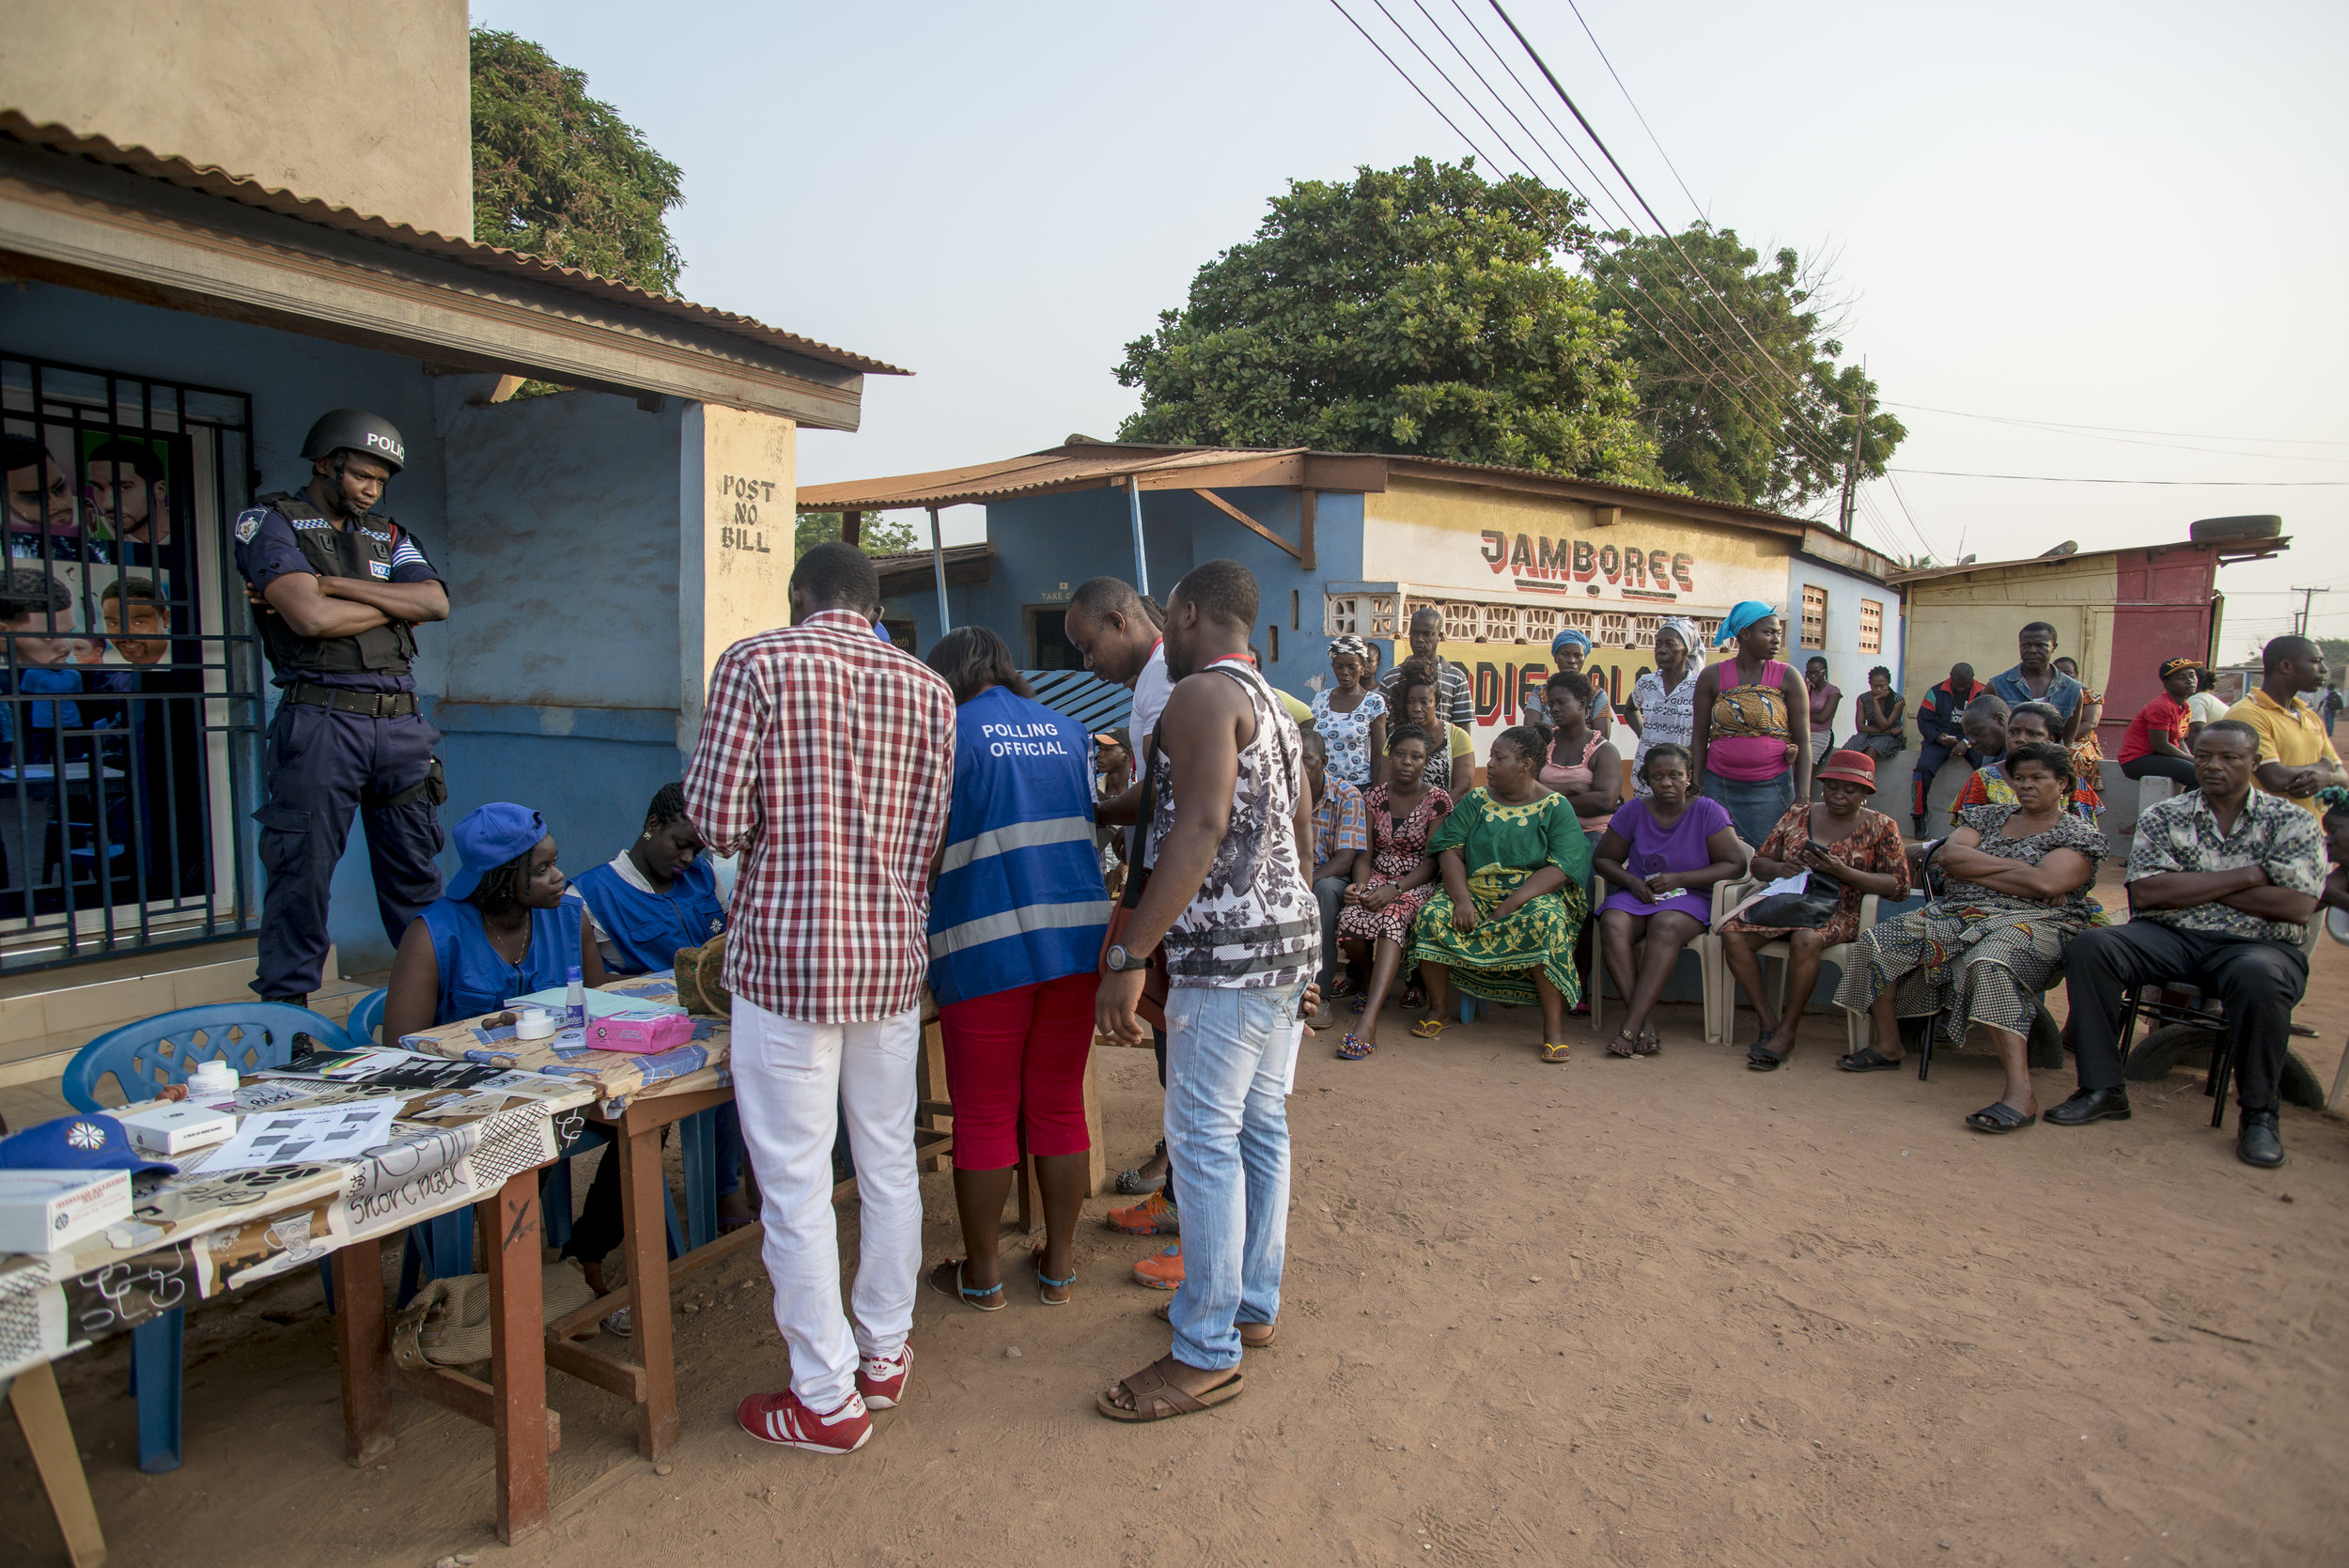 Electoral commission officers preparing Eddie Polo's Jamboree polling station in Accra during the General Election day. Each polling station is secured with police officers and security